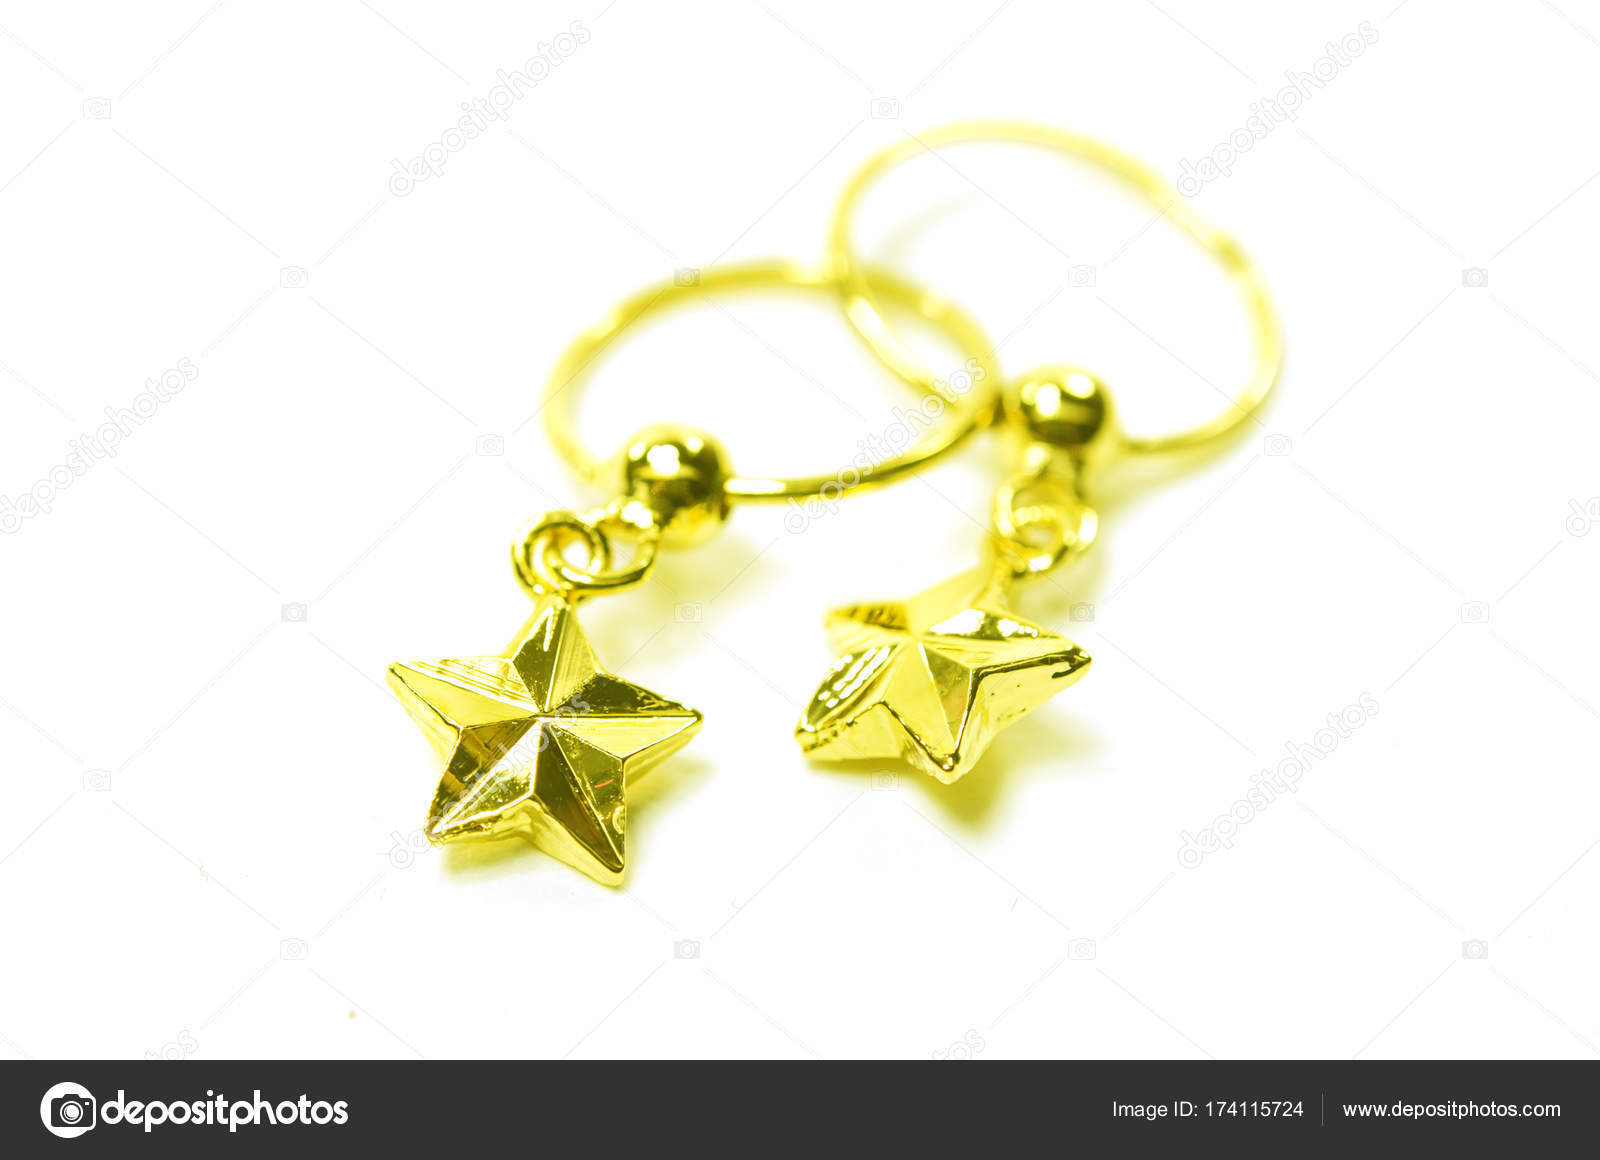 gold pin necklace rose pendant star jewellery shape